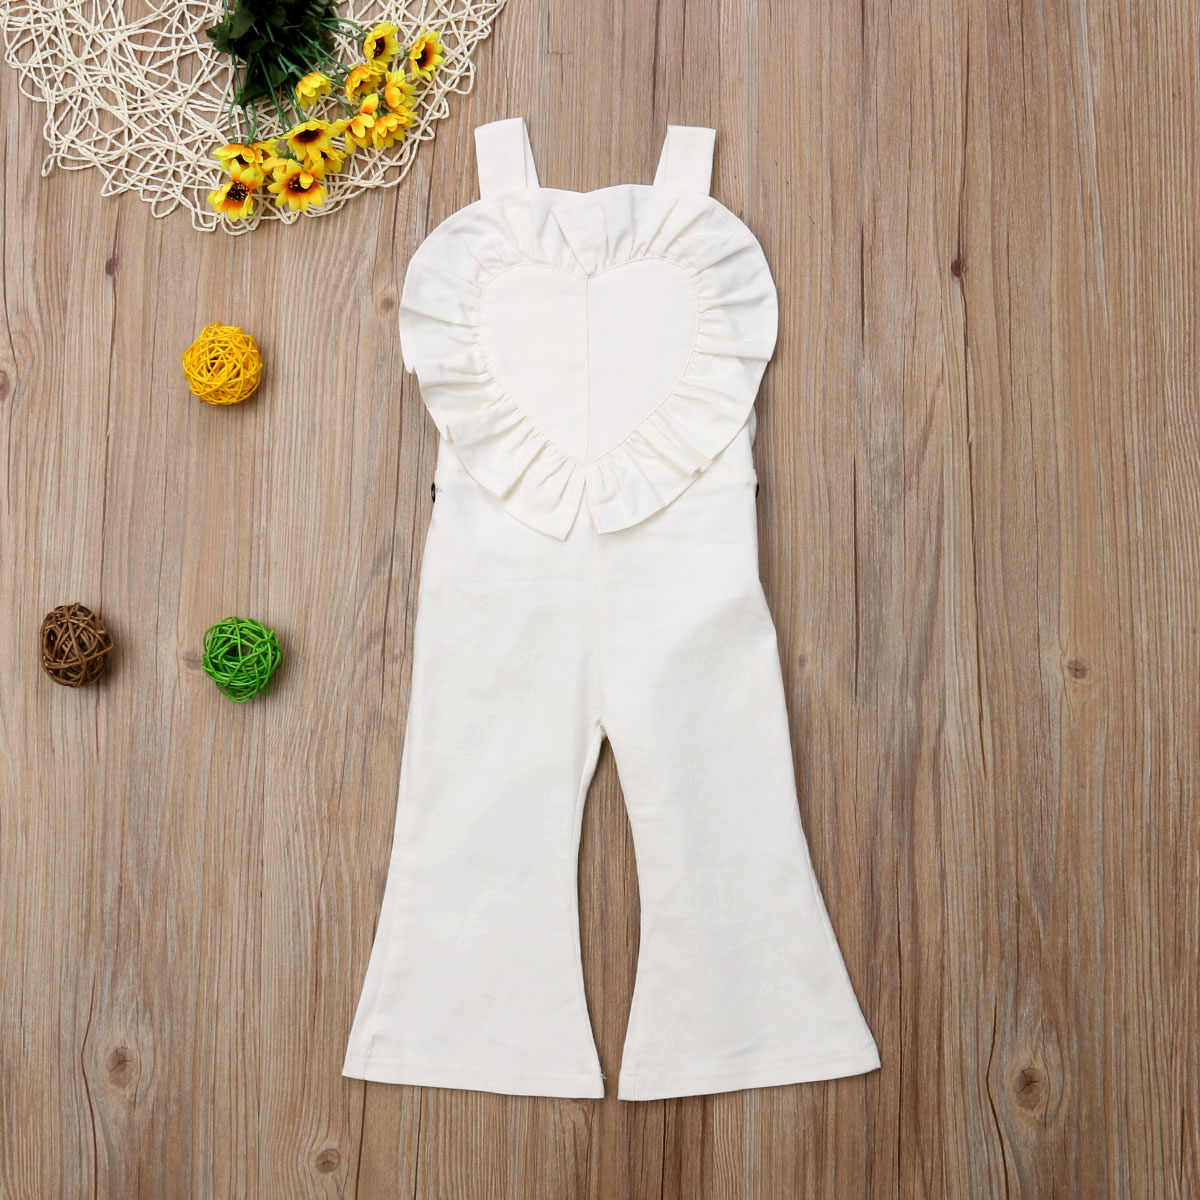 f218694d370 ... 2018 Fashion Kids Baby Girl Romper Jumpsuit Ruffles Overalls Romper  Jumper Bell Bottom Trousers Summer Autumn ...